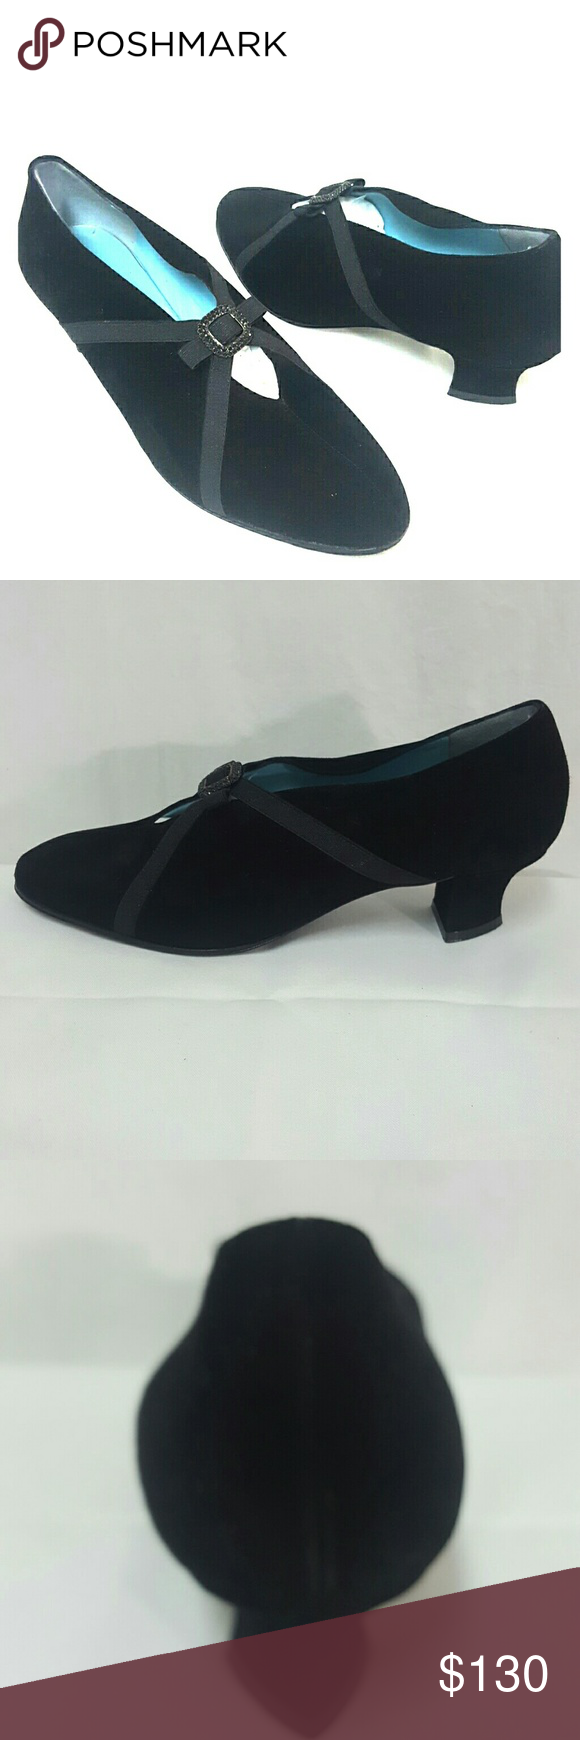 Thierry Rabotin black suede pumps Mint Size 7 Thierry Rabotin pumps in mint condition. Size 7, suede, heel is 1.7 inches. Thierry Rabotin  Shoes Heels